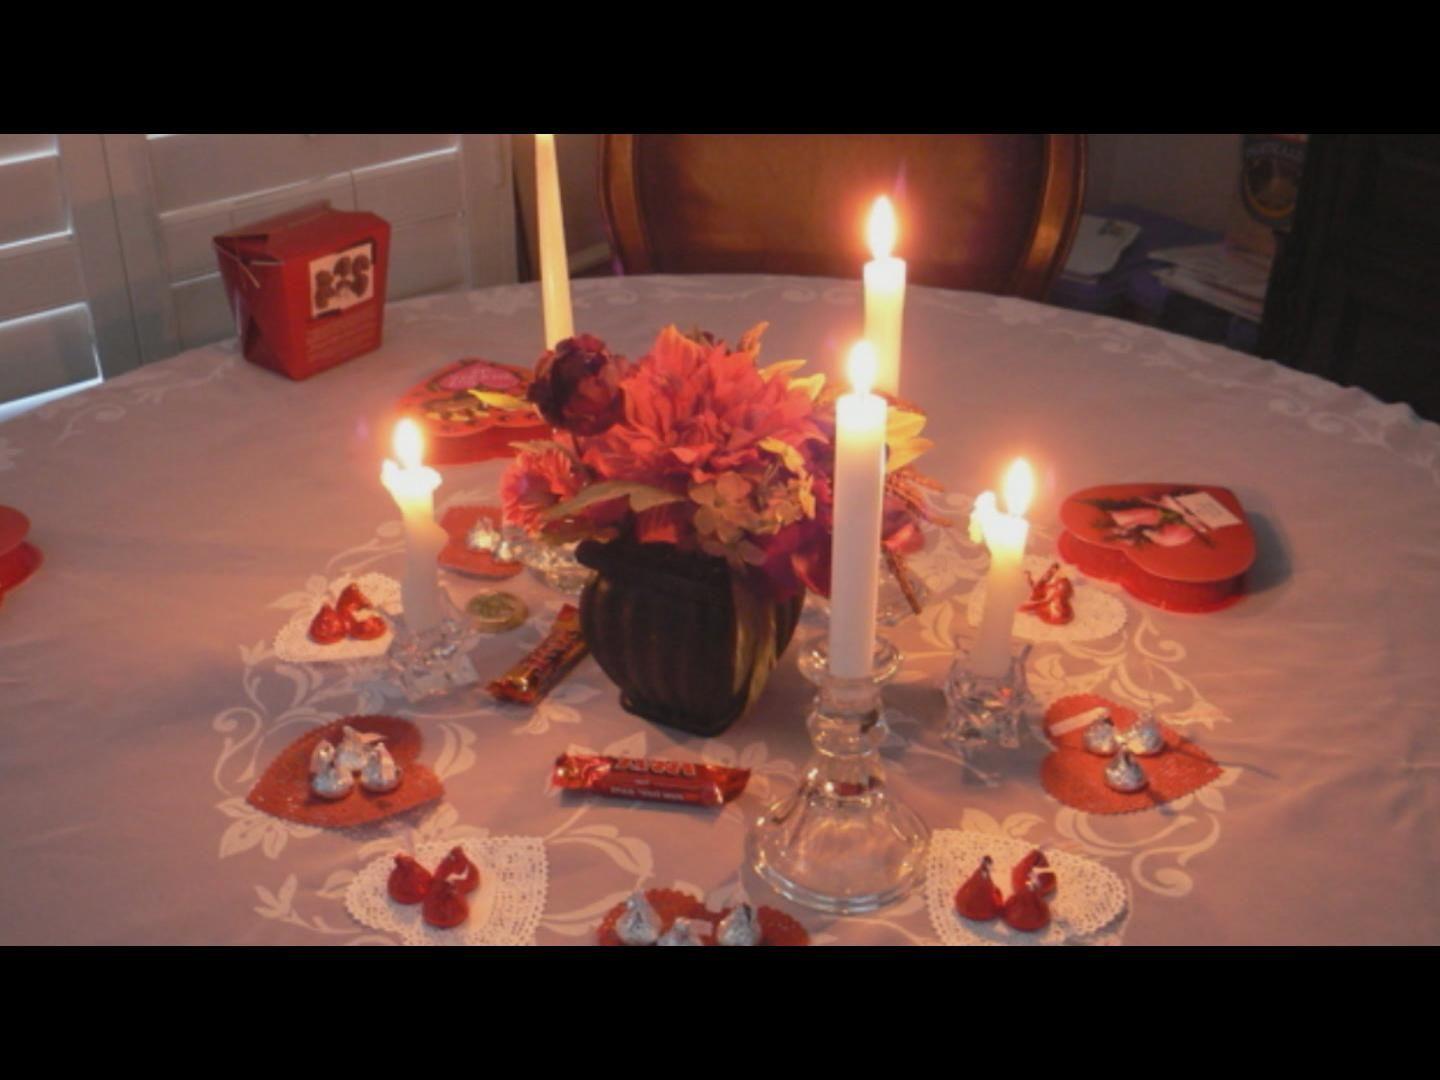 romantic valentine dinner ideas at home - learn to have more great